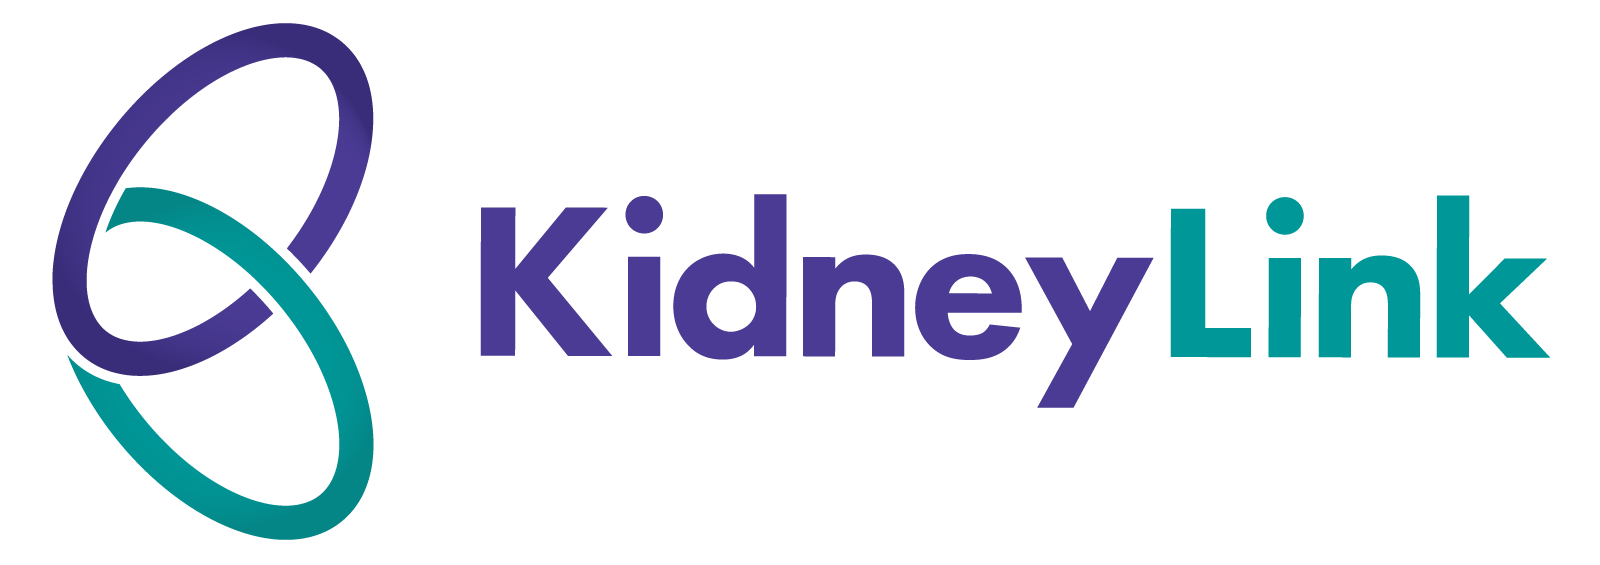 KidneyLink